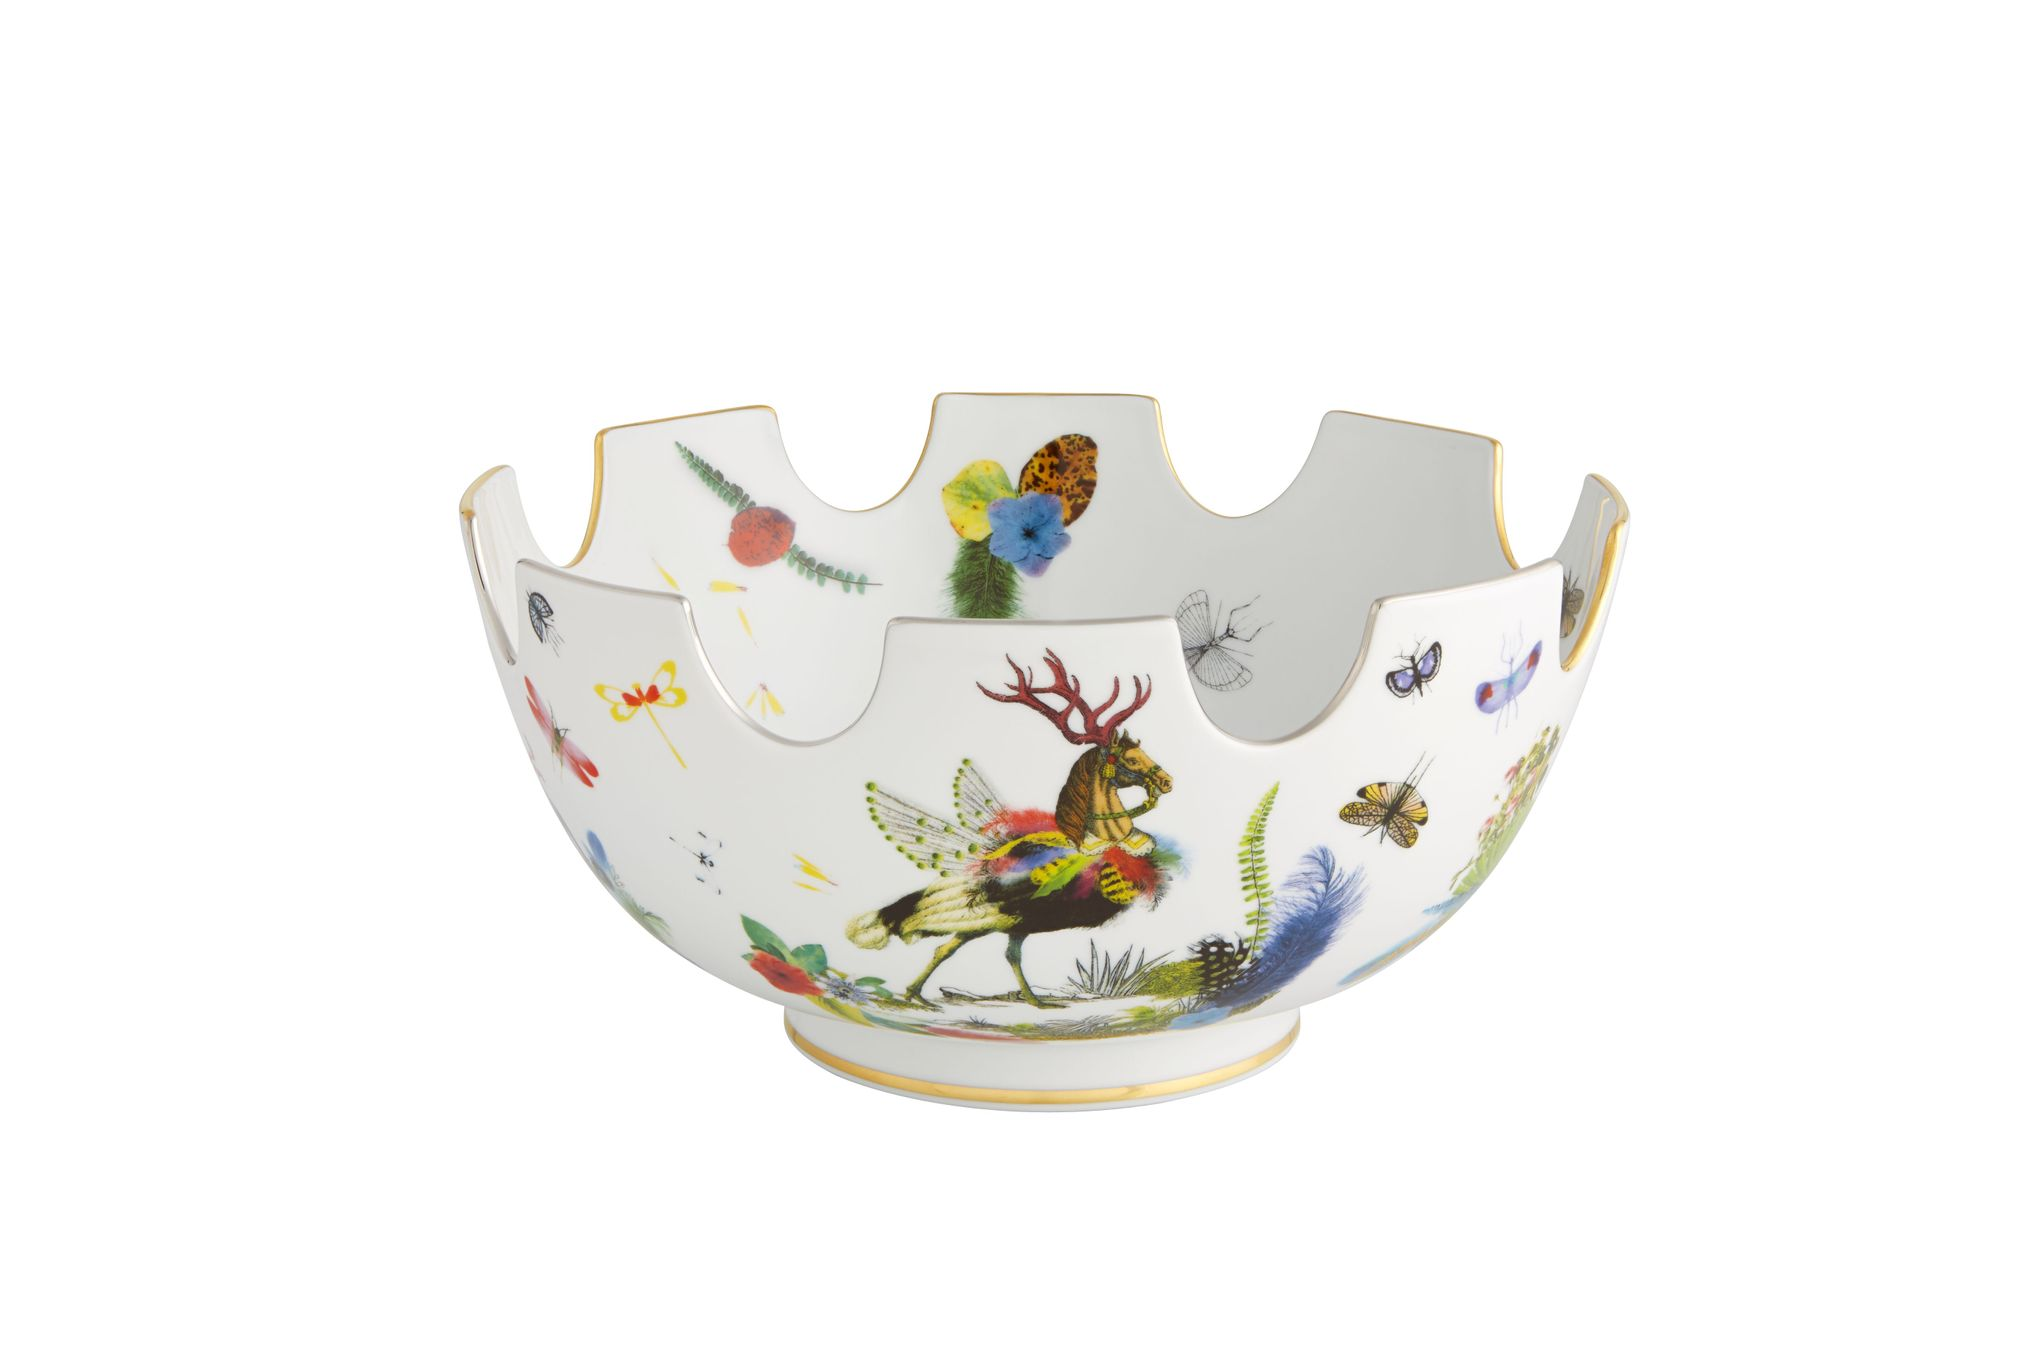 Christian Lacroix Caribe Serving Bowl Gift Boxed 32.1 x 16.5cm thumb 1